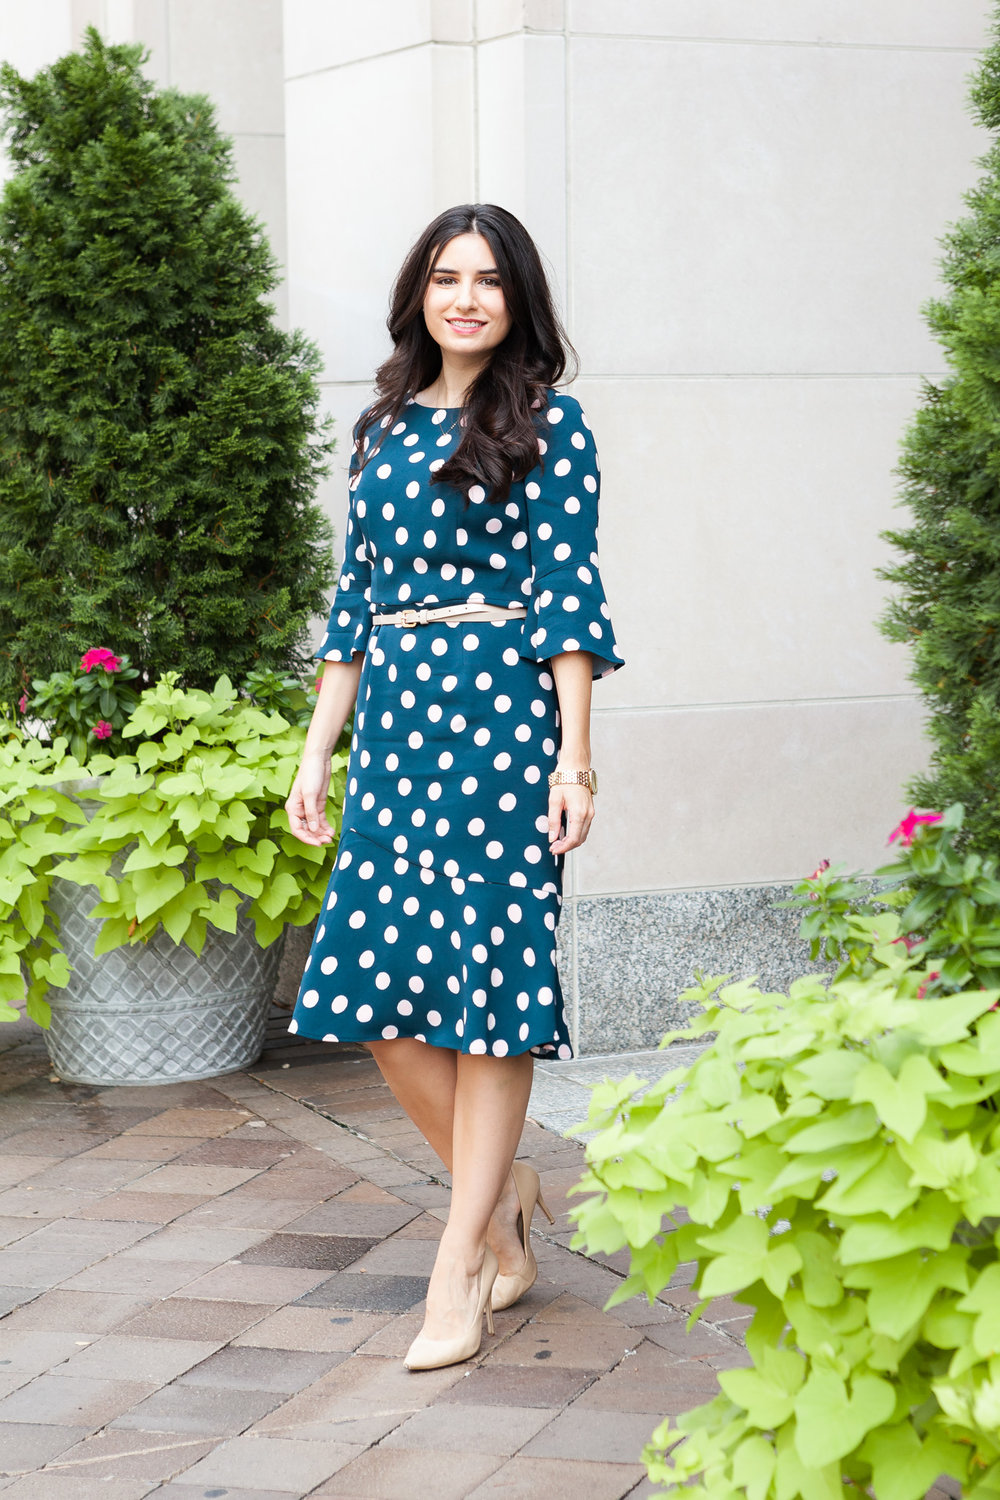 Dress: I bought this last year from Boden. Here's a  similar one  that's in-stock. Shoes:  Similar, Sam Edelman, Nordstrom